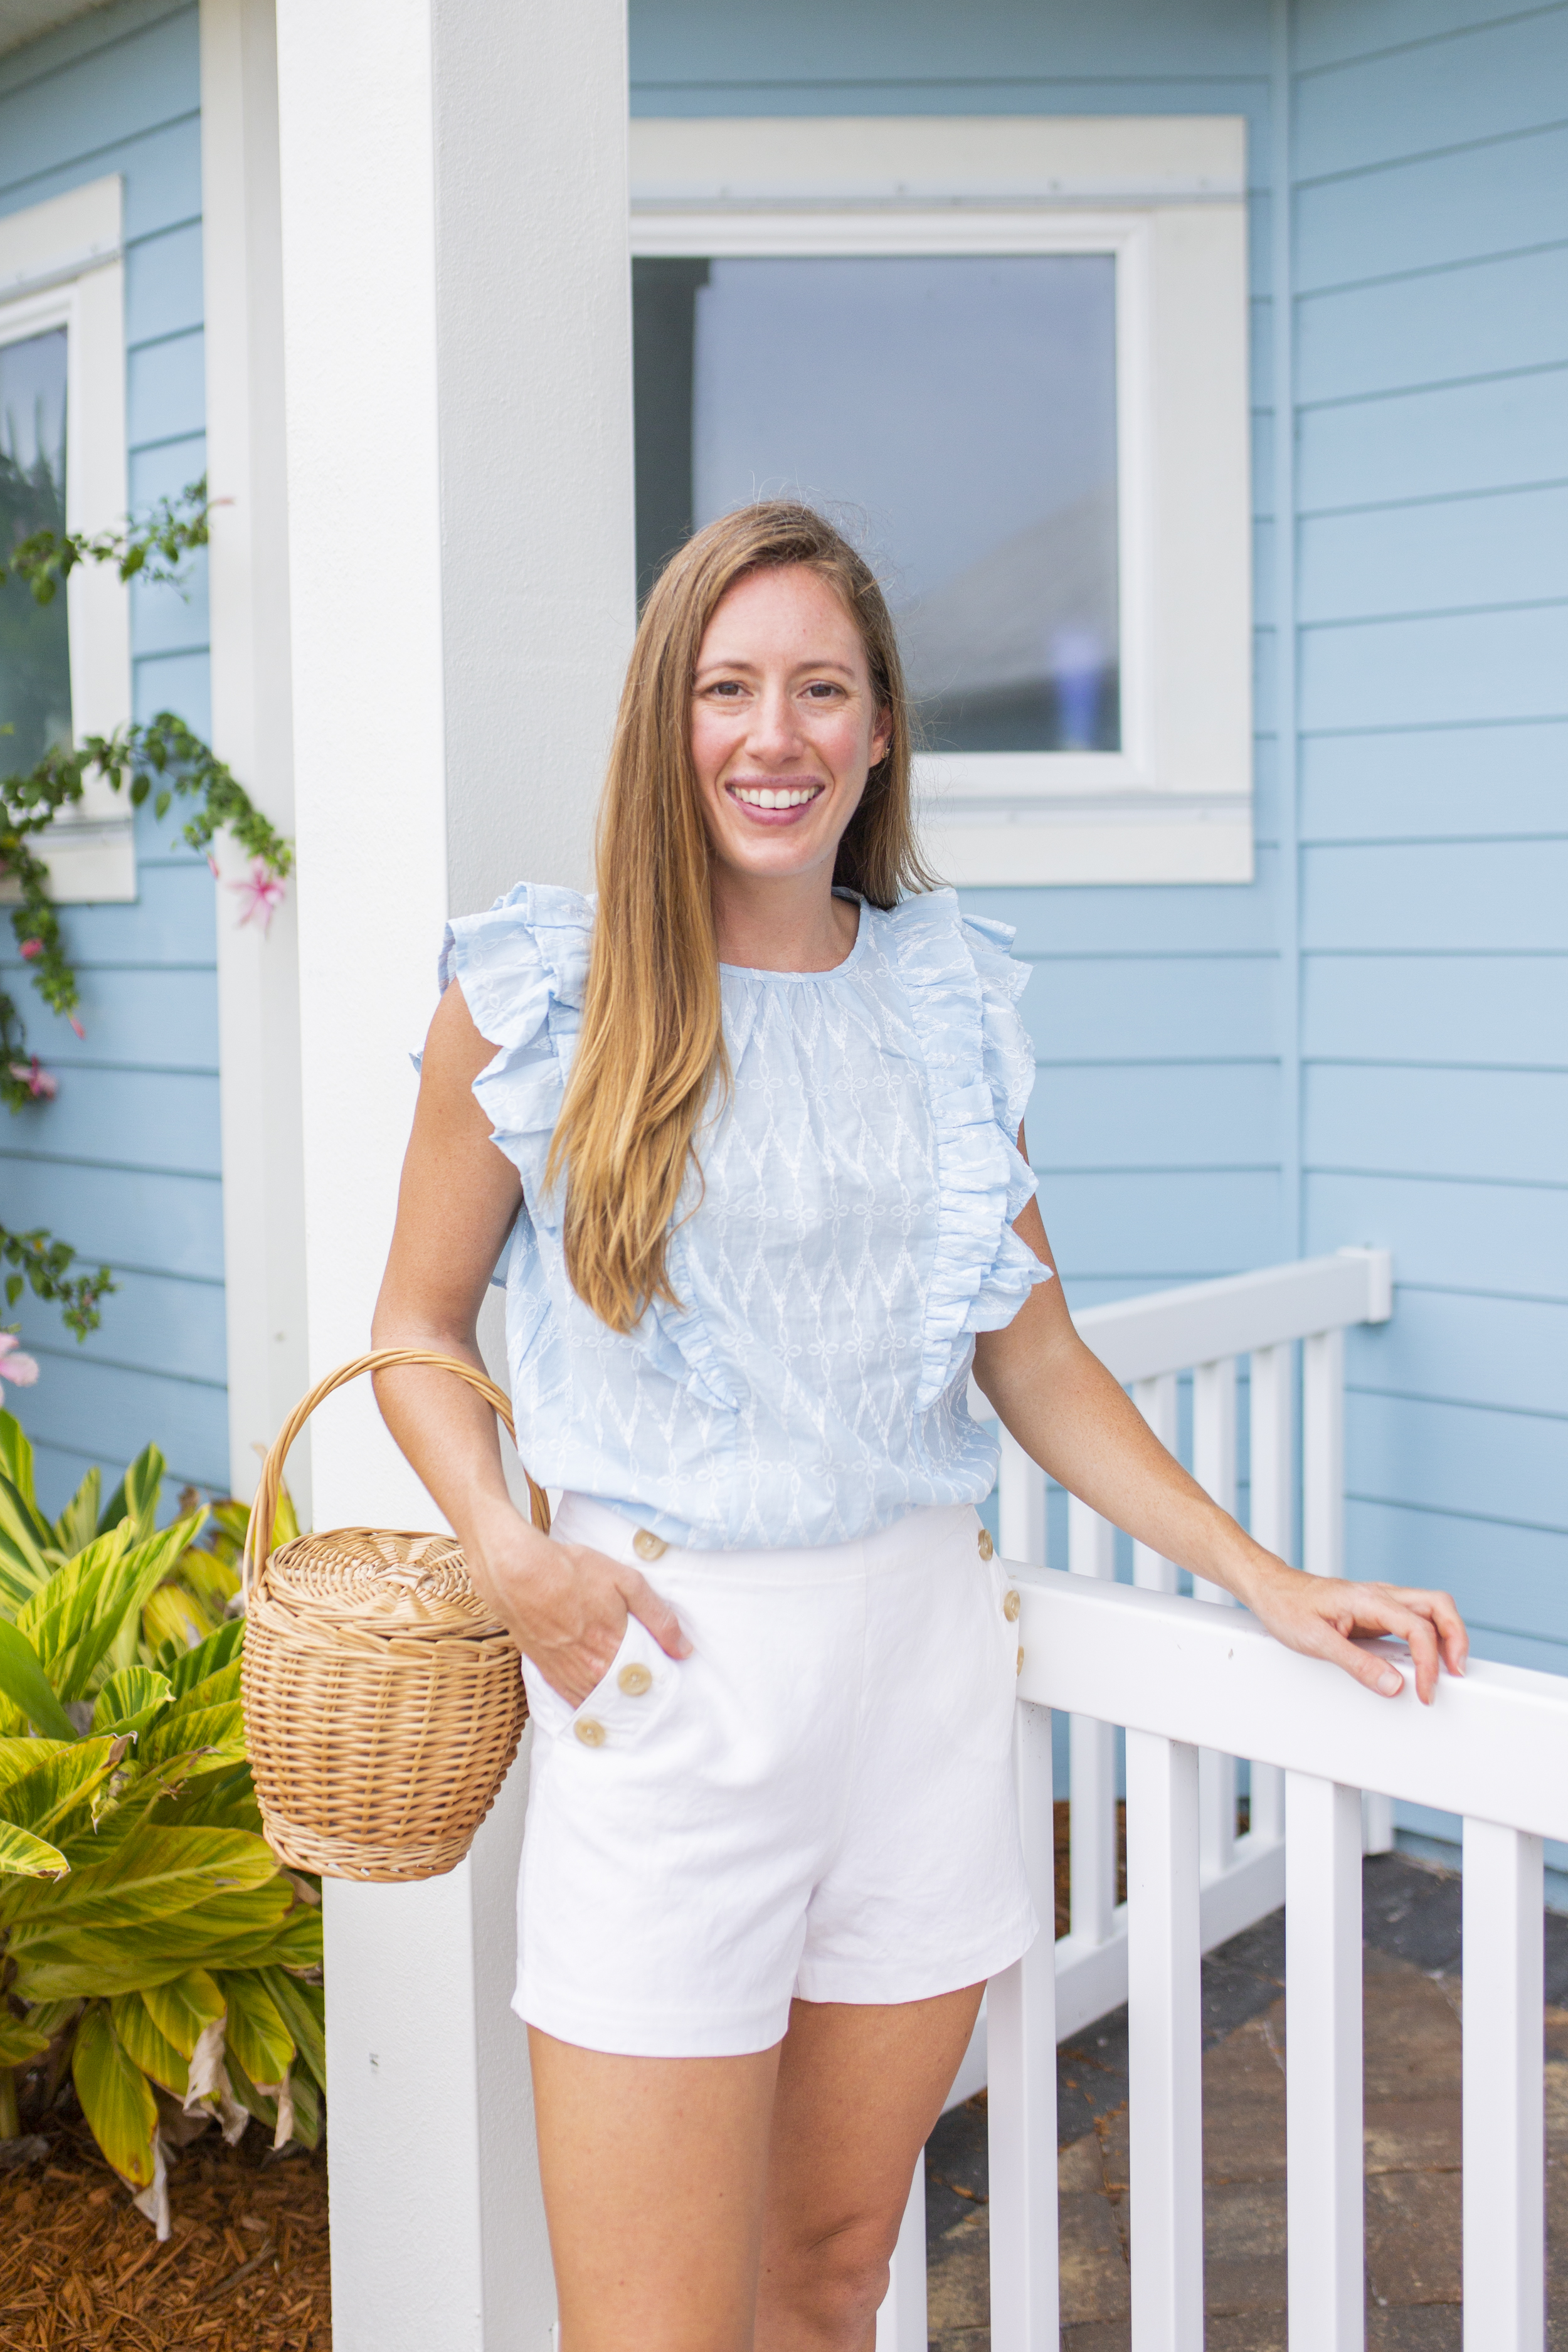 Woman smiling and wearing blue and white top styled with white shorts and a raffia bag